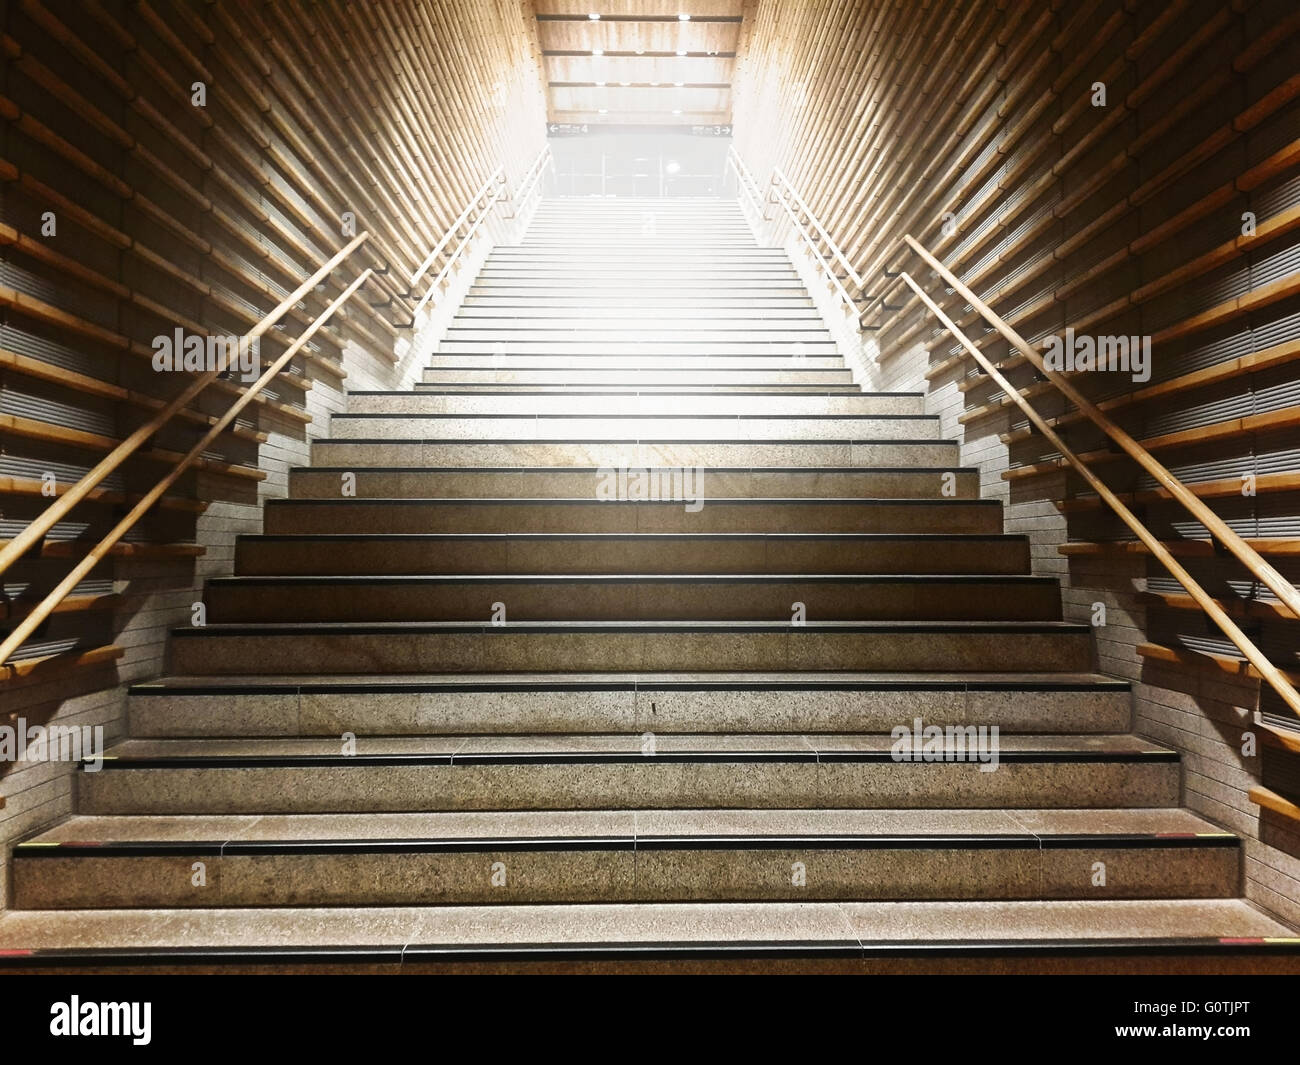 Low Angle View Of Steps And Staircase In Underground Station